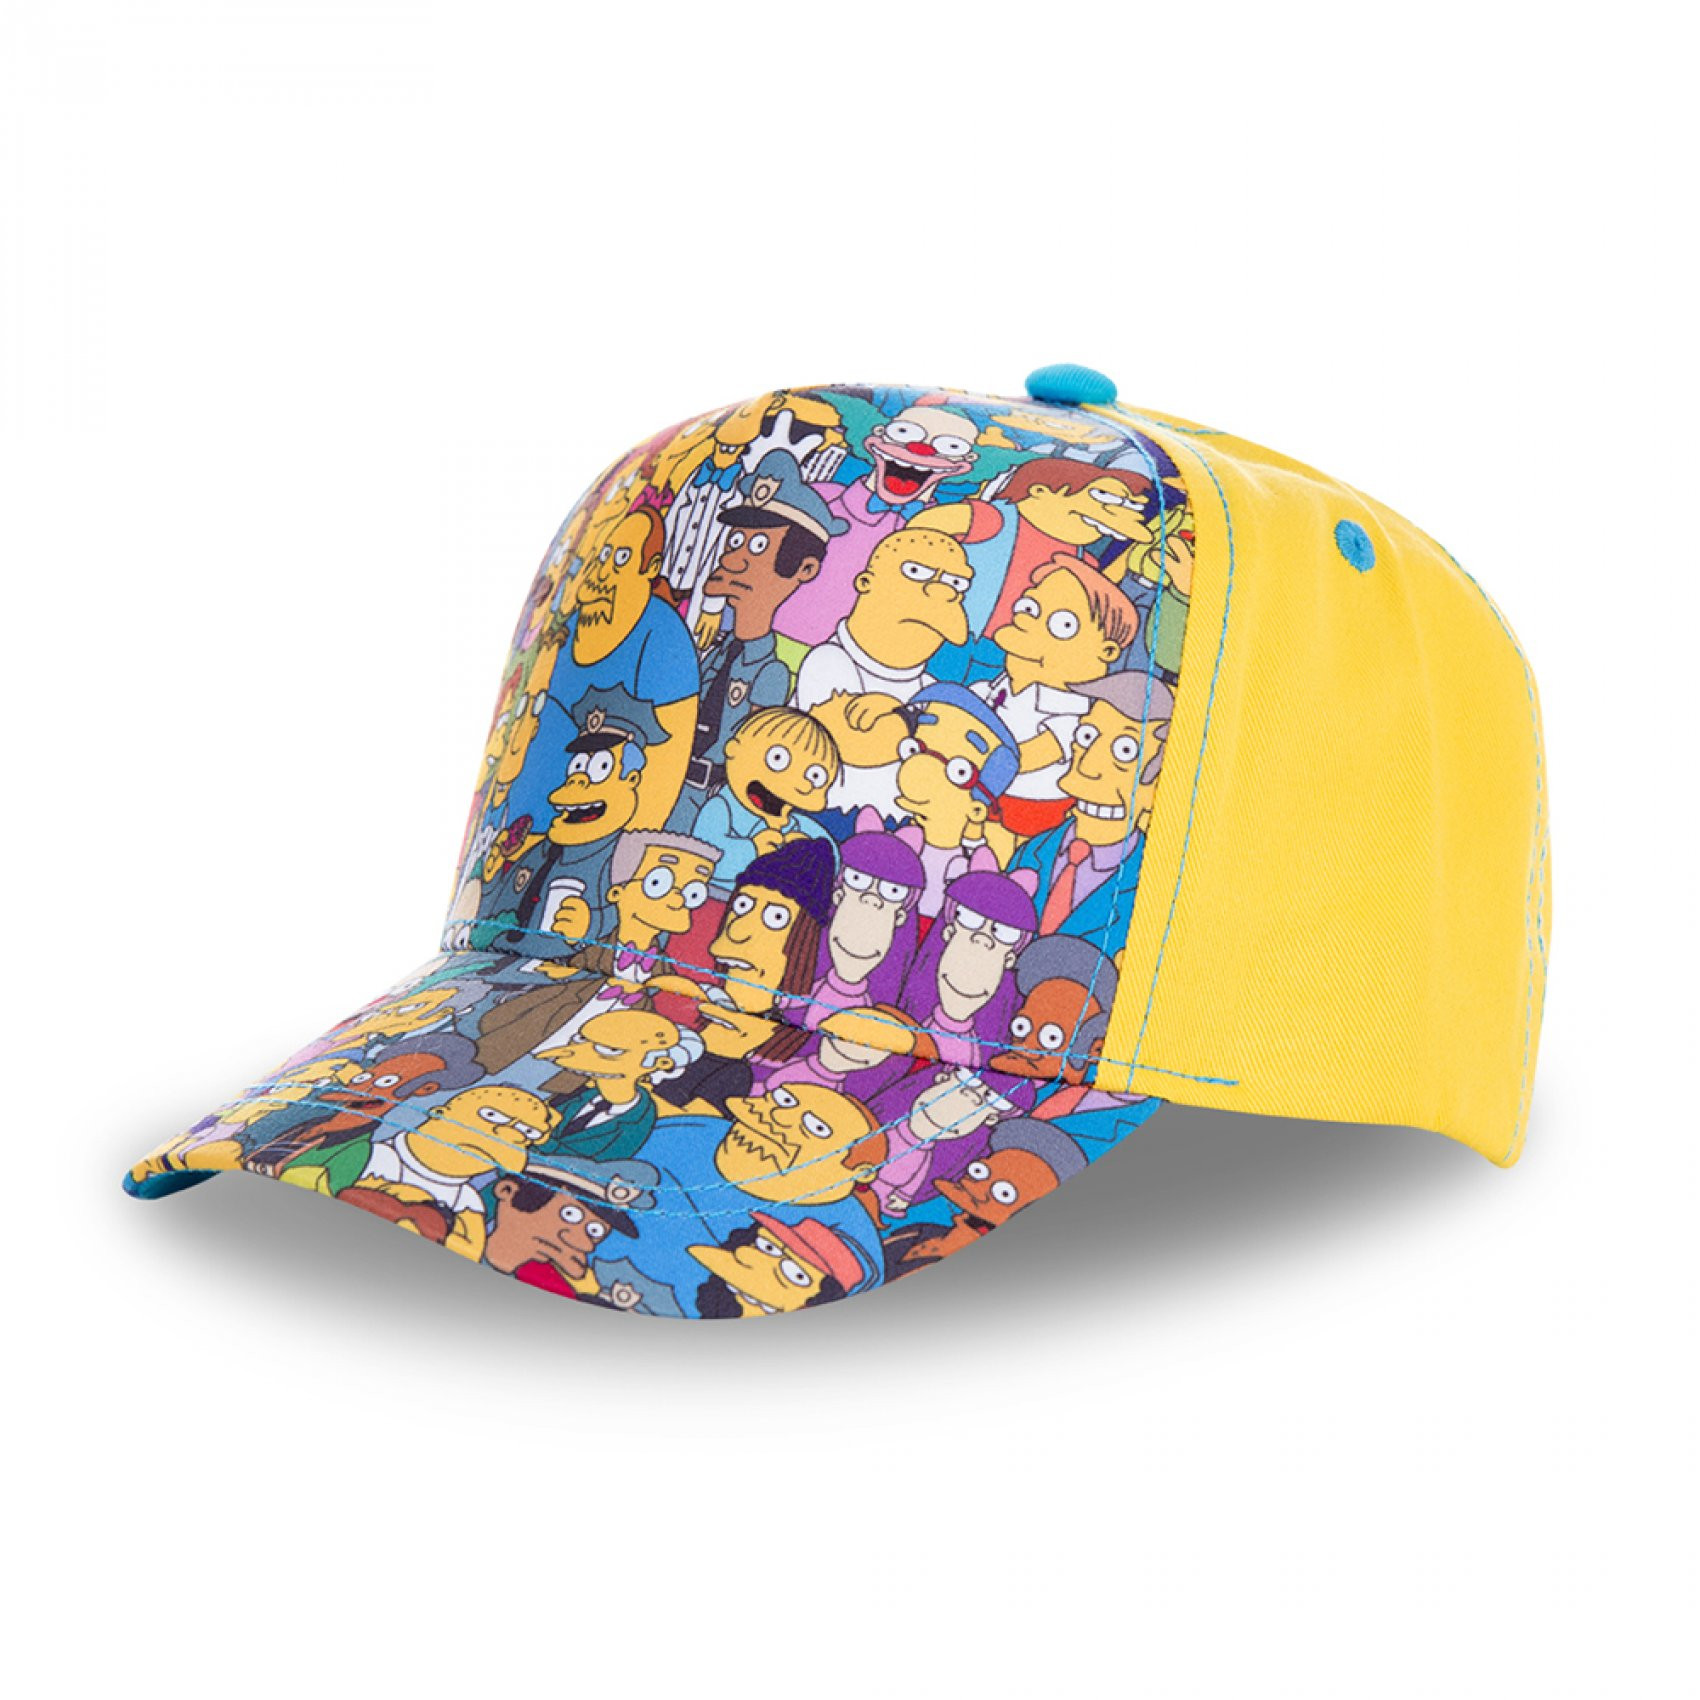 Casquette baseball garçon people simpsons (photo)